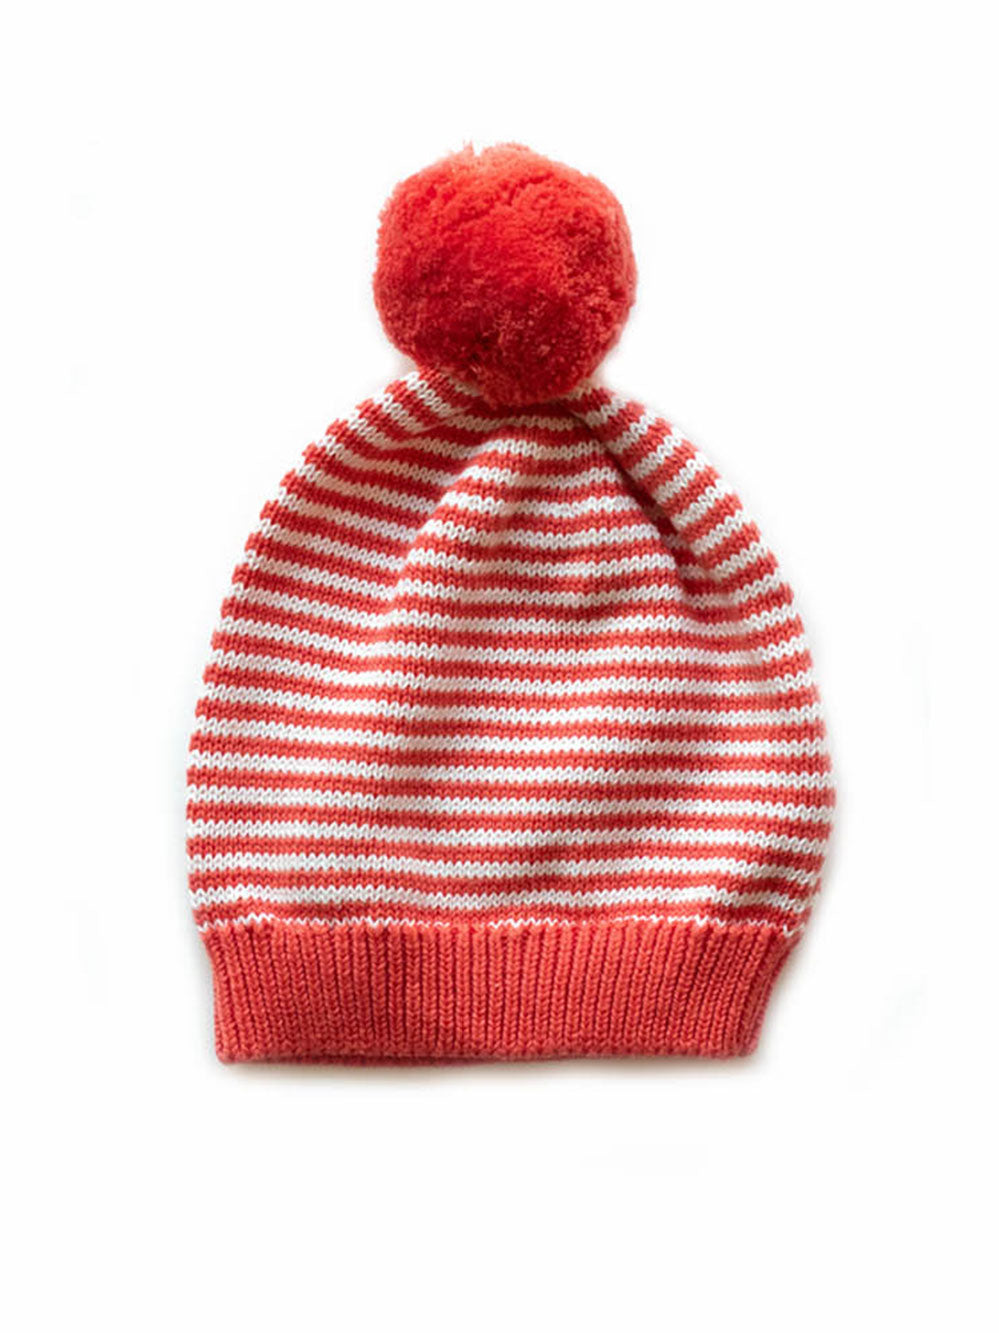 Big Pom Baby Hat | Coral & Ivory